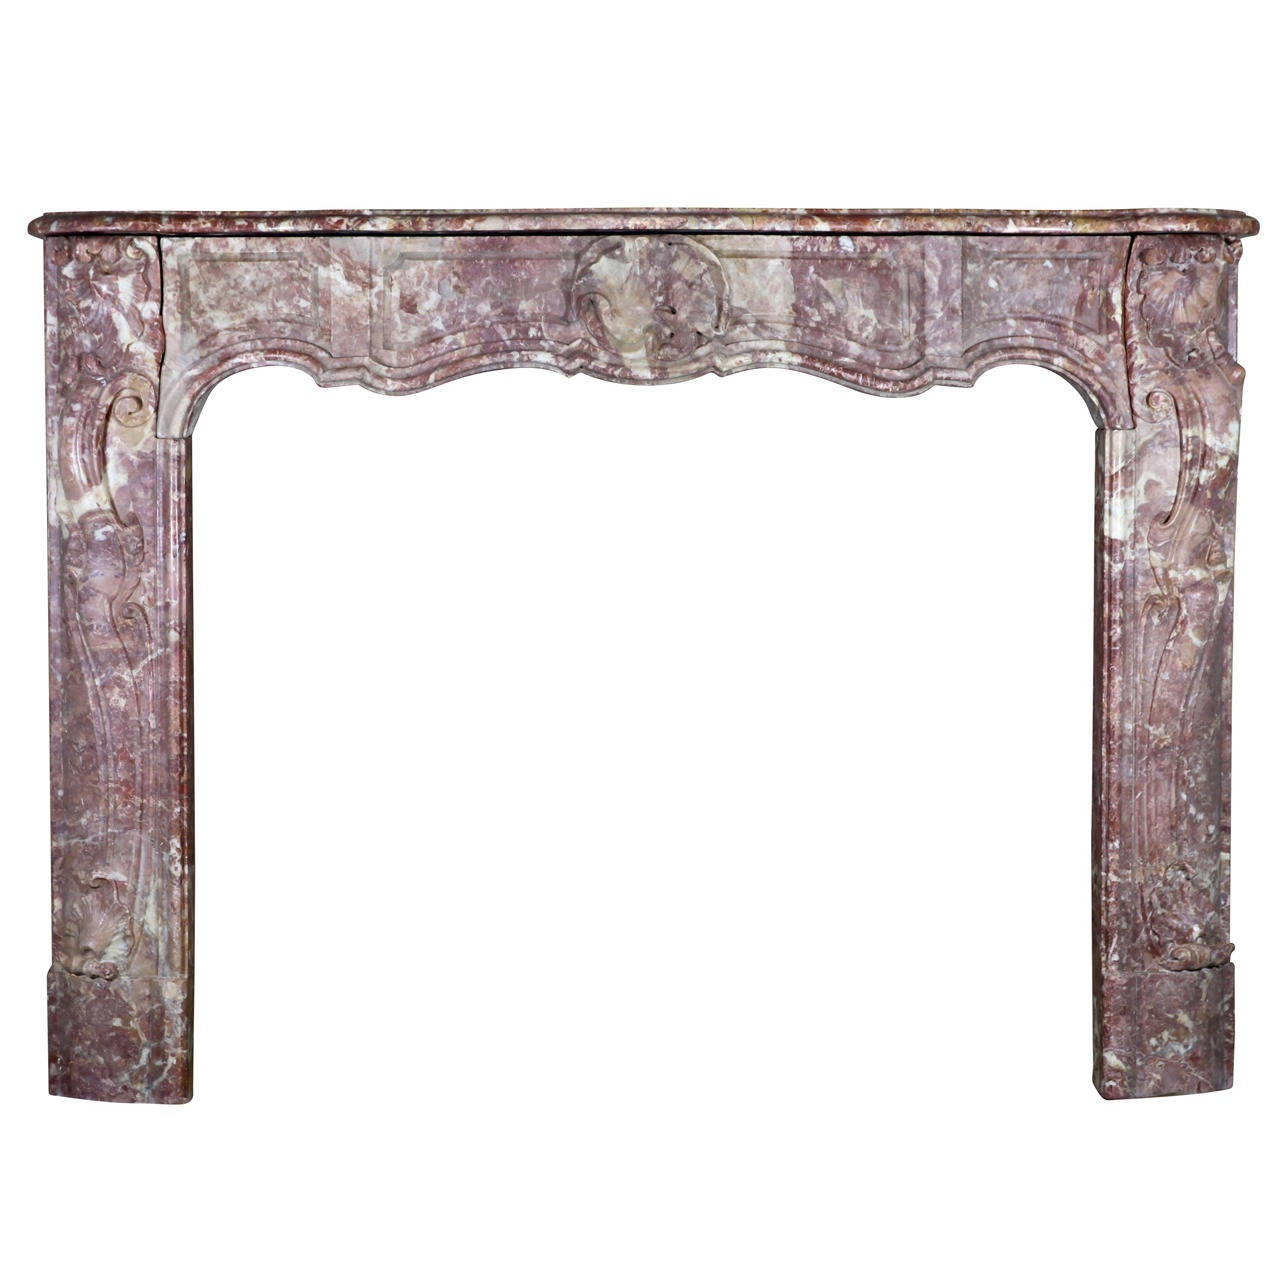 18th Century Italian Marble Antique Fireplace Mantel, Nicely Oxidated, Regency P